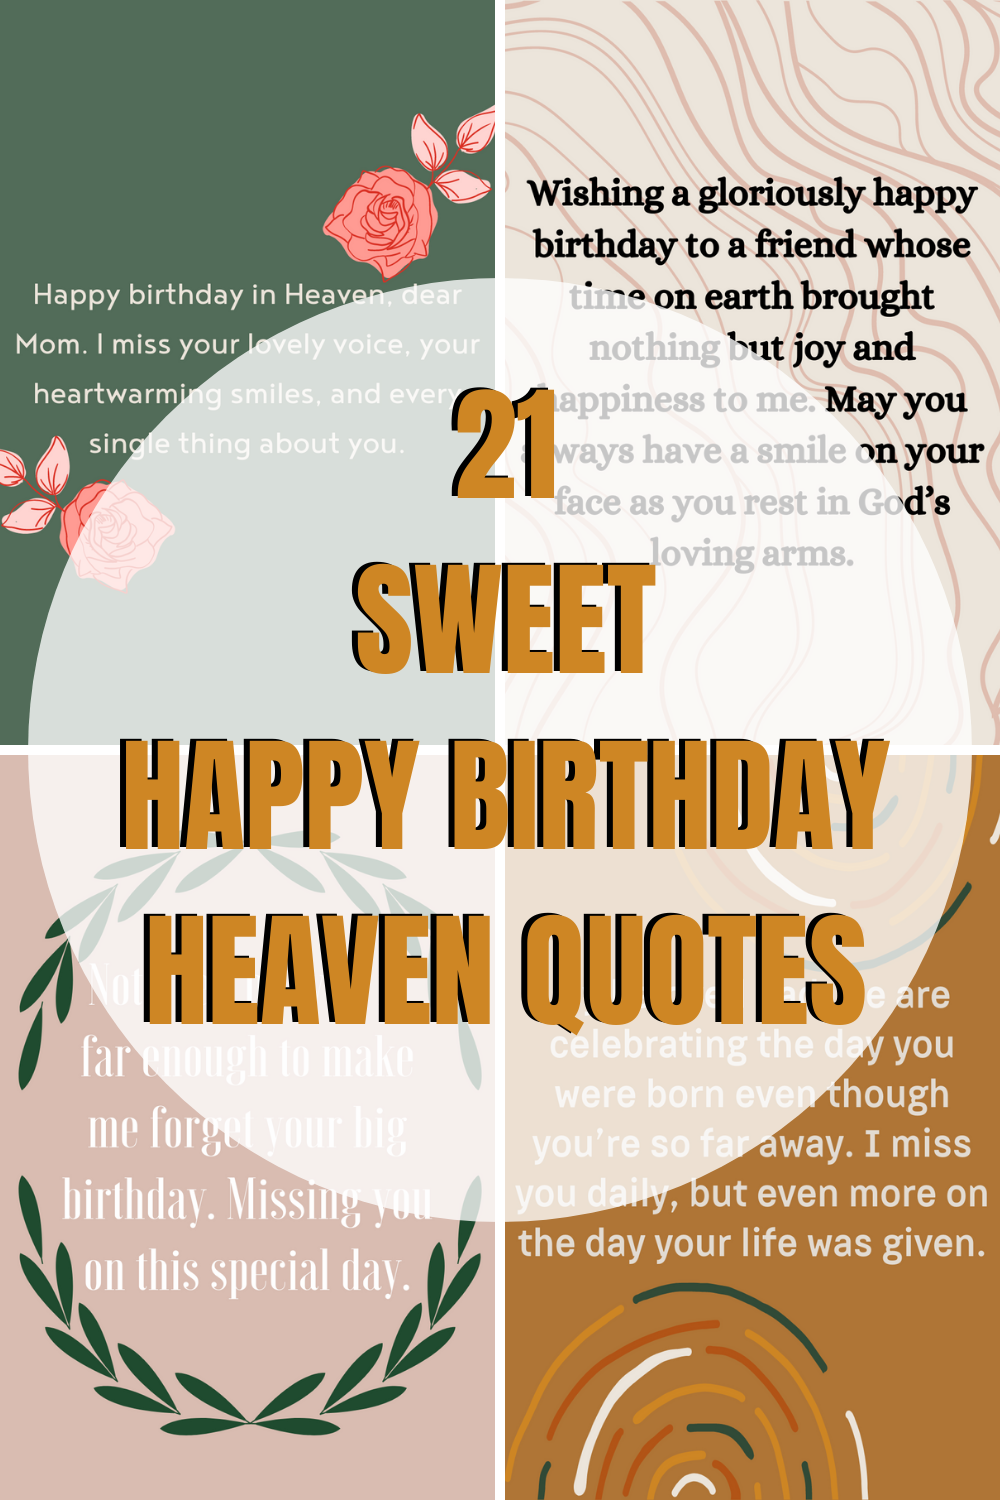 Happy Birthday in Heaven Quotes